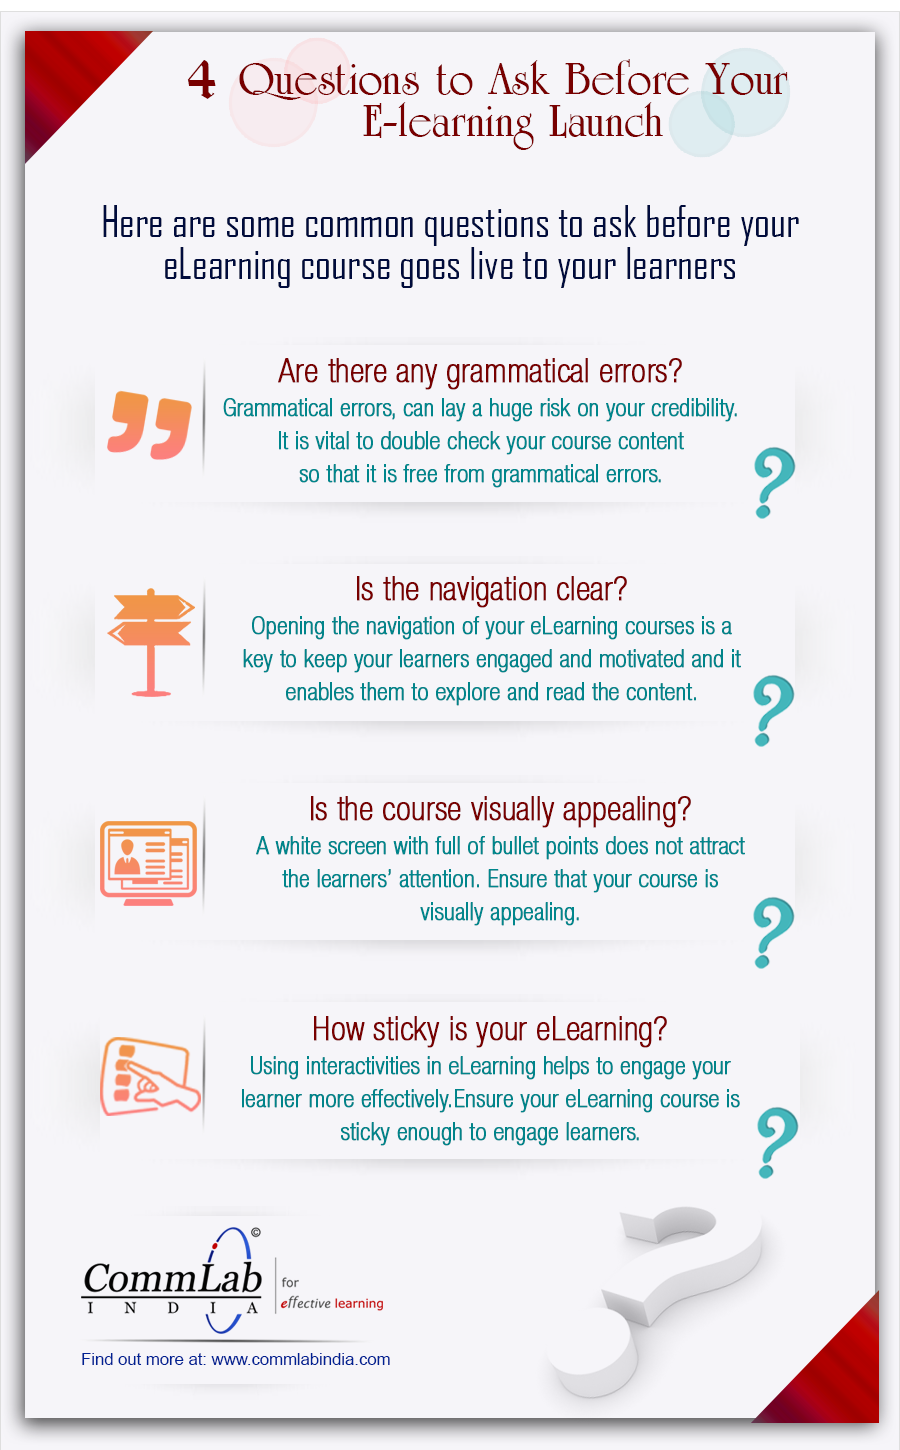 4 Questions You Need to Ask Before You Launch an E-learning Course – An Infographic